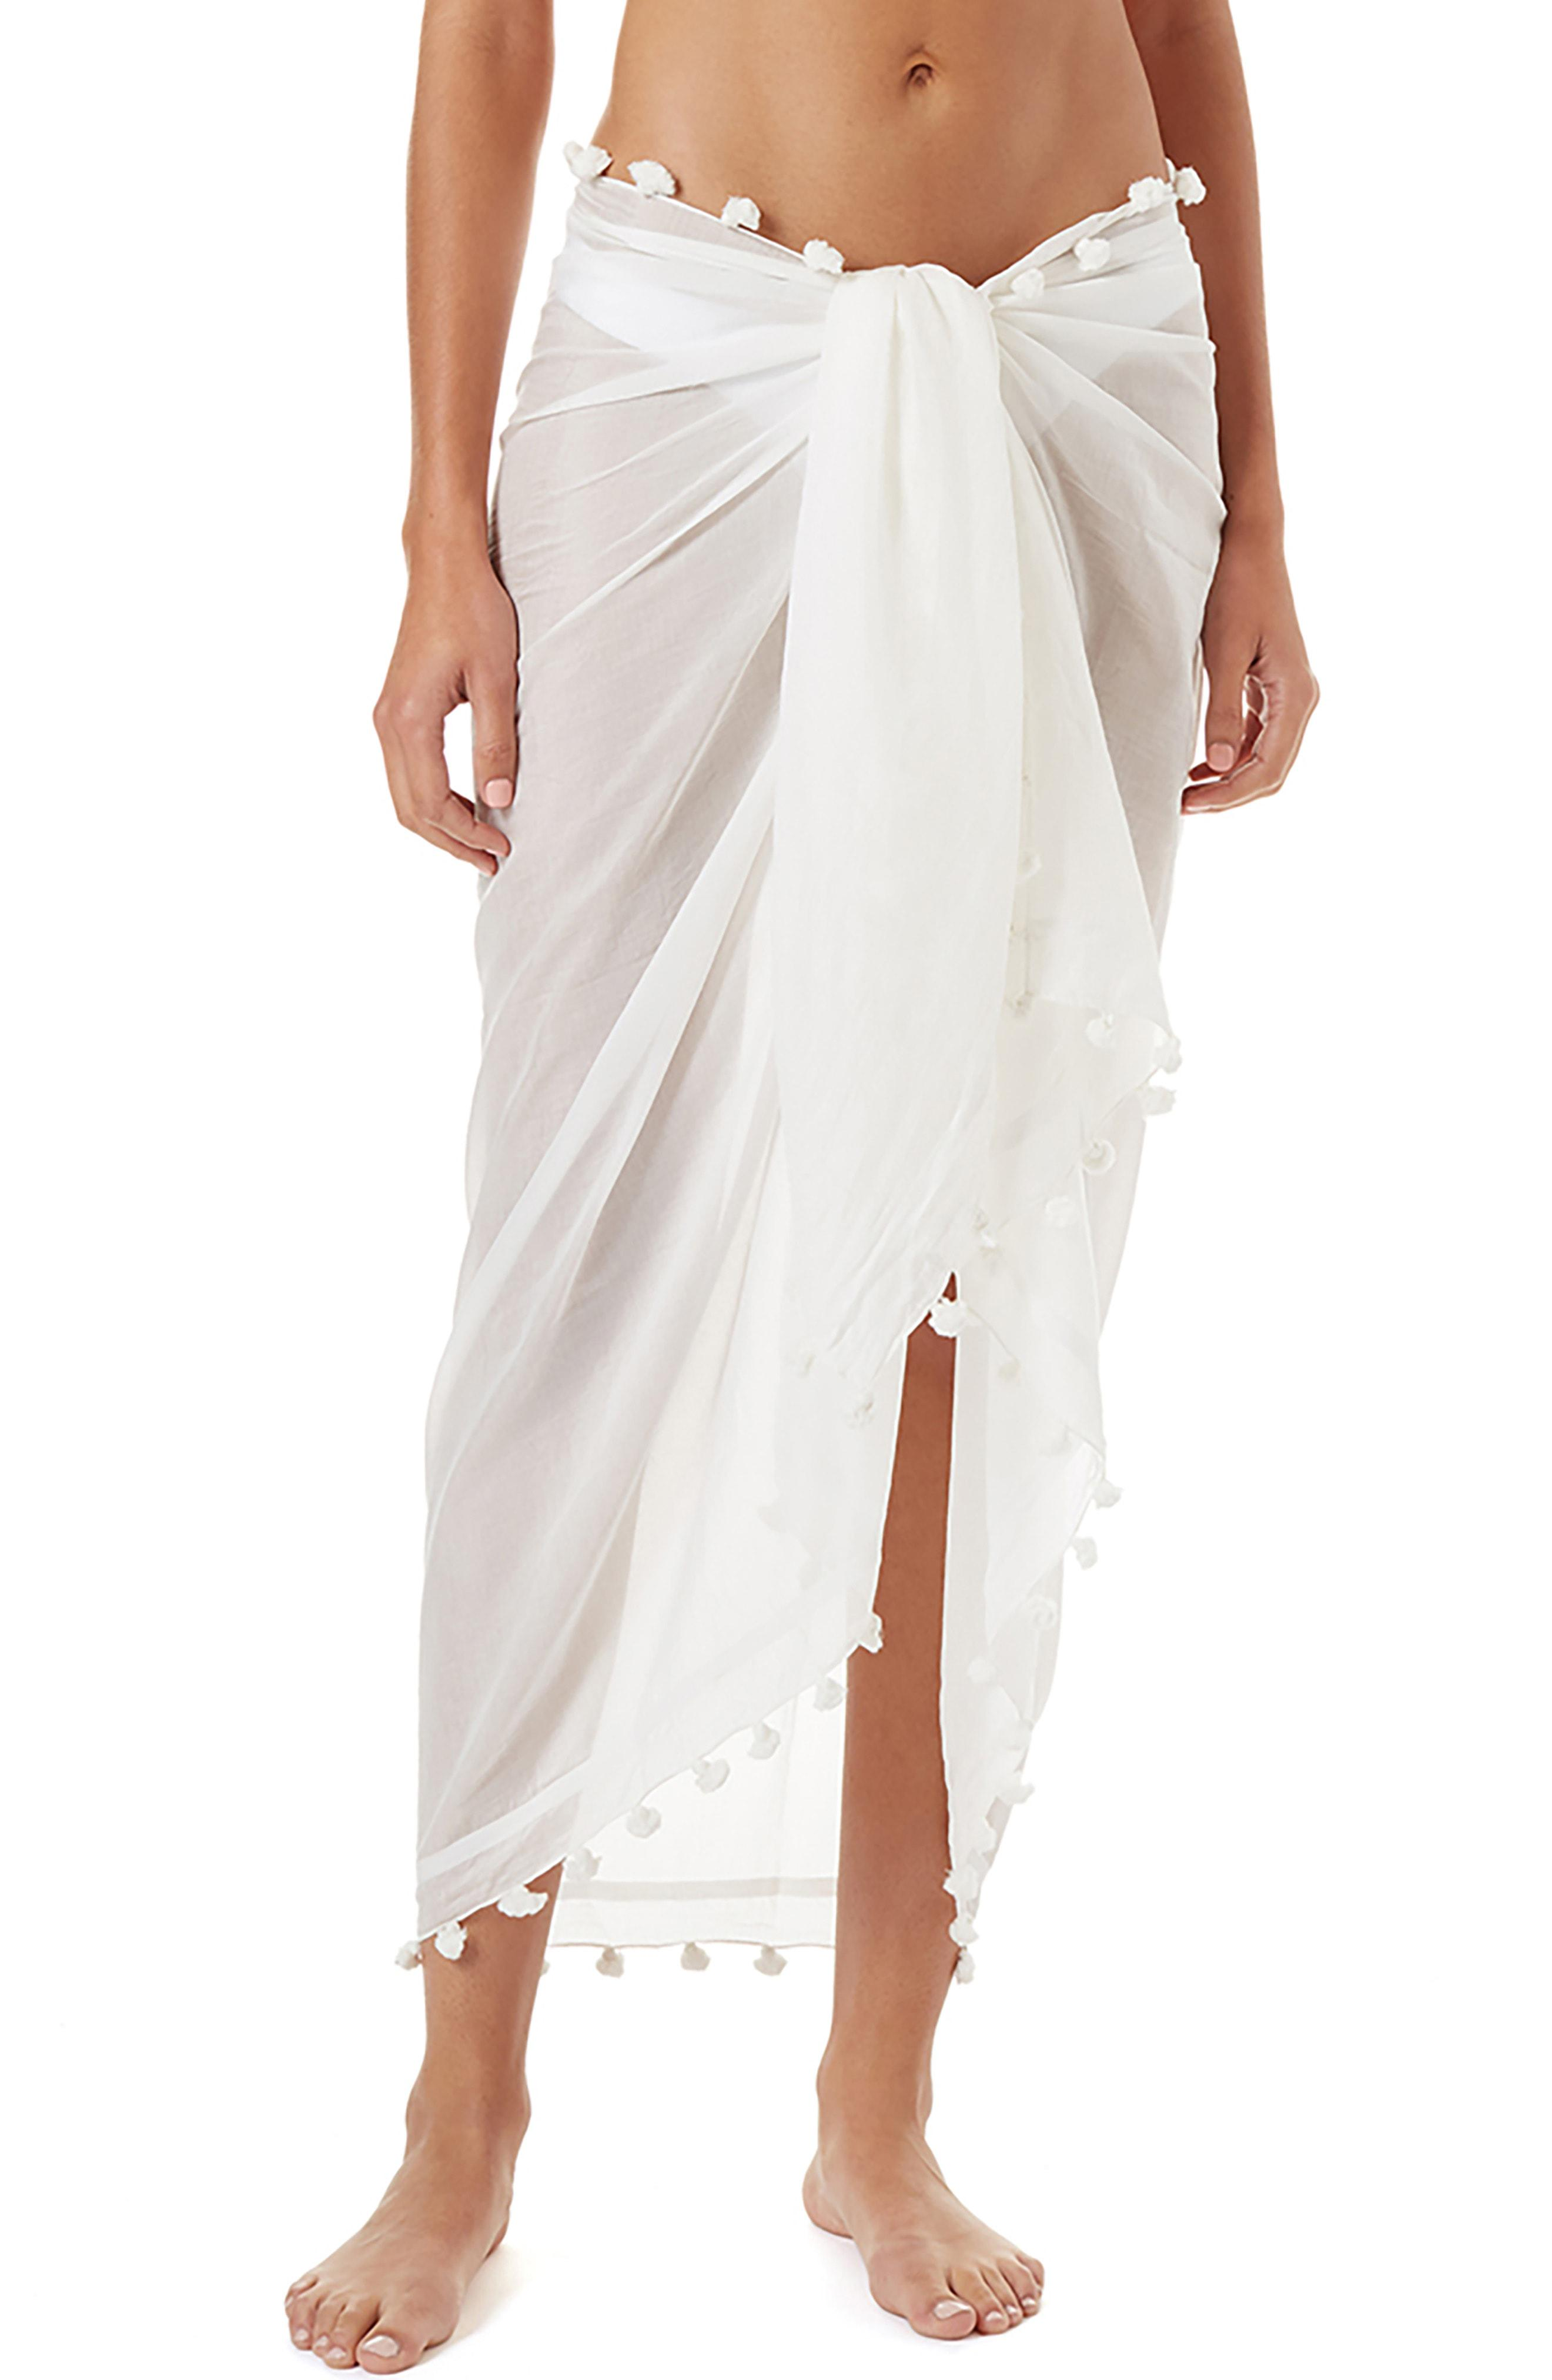 b36c97dba73a3a Lyst - Melissa Odabash Tassel Cover-up Pareo in White